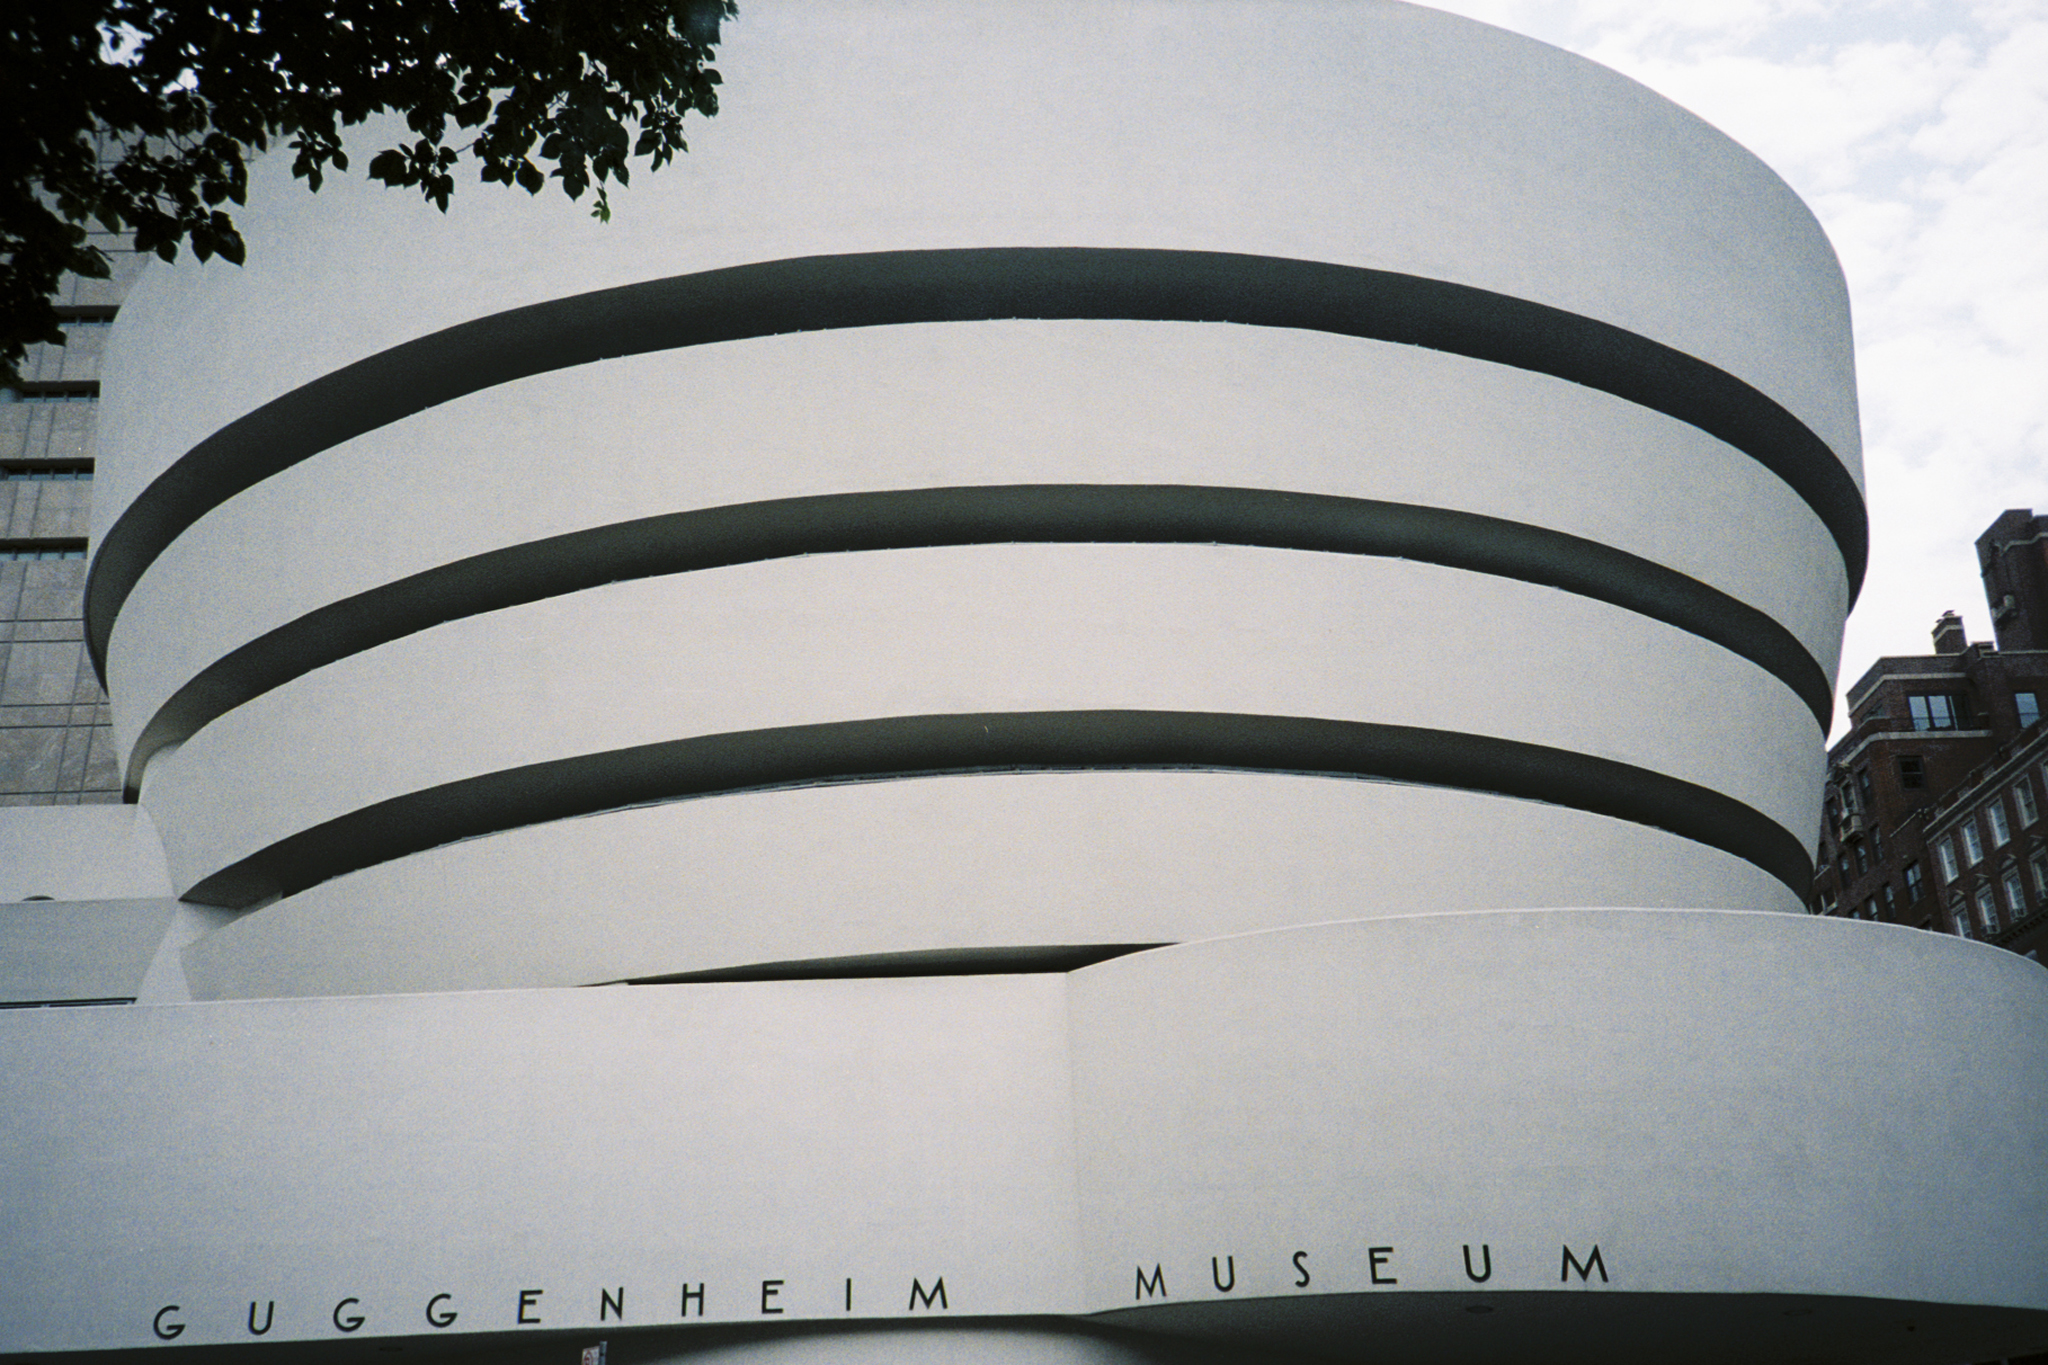 …or the Guggenheim